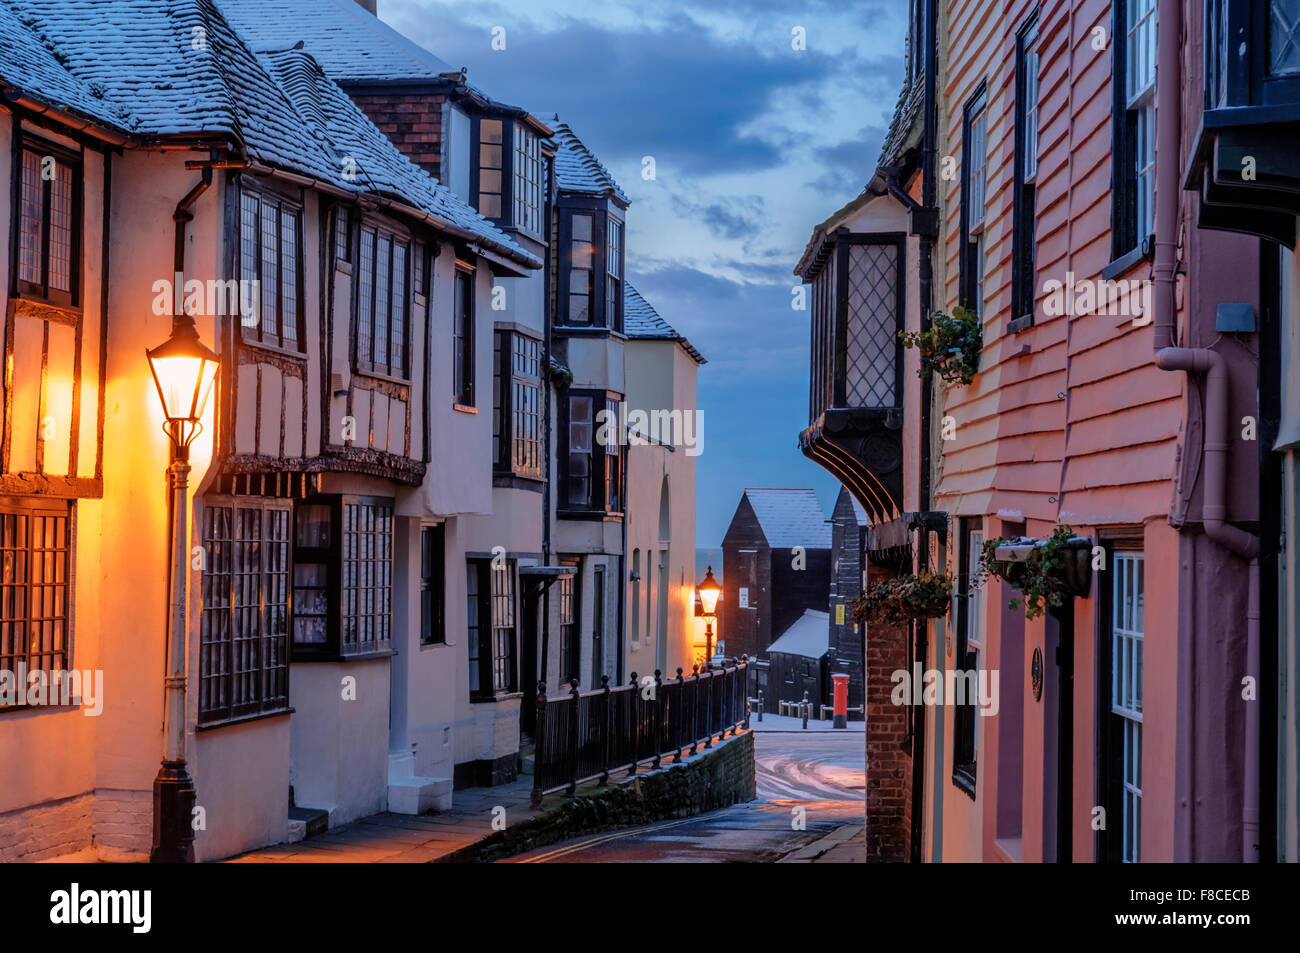 All Saints Street. Hastings Old Town, East Sussex, England. UK - Stock Image